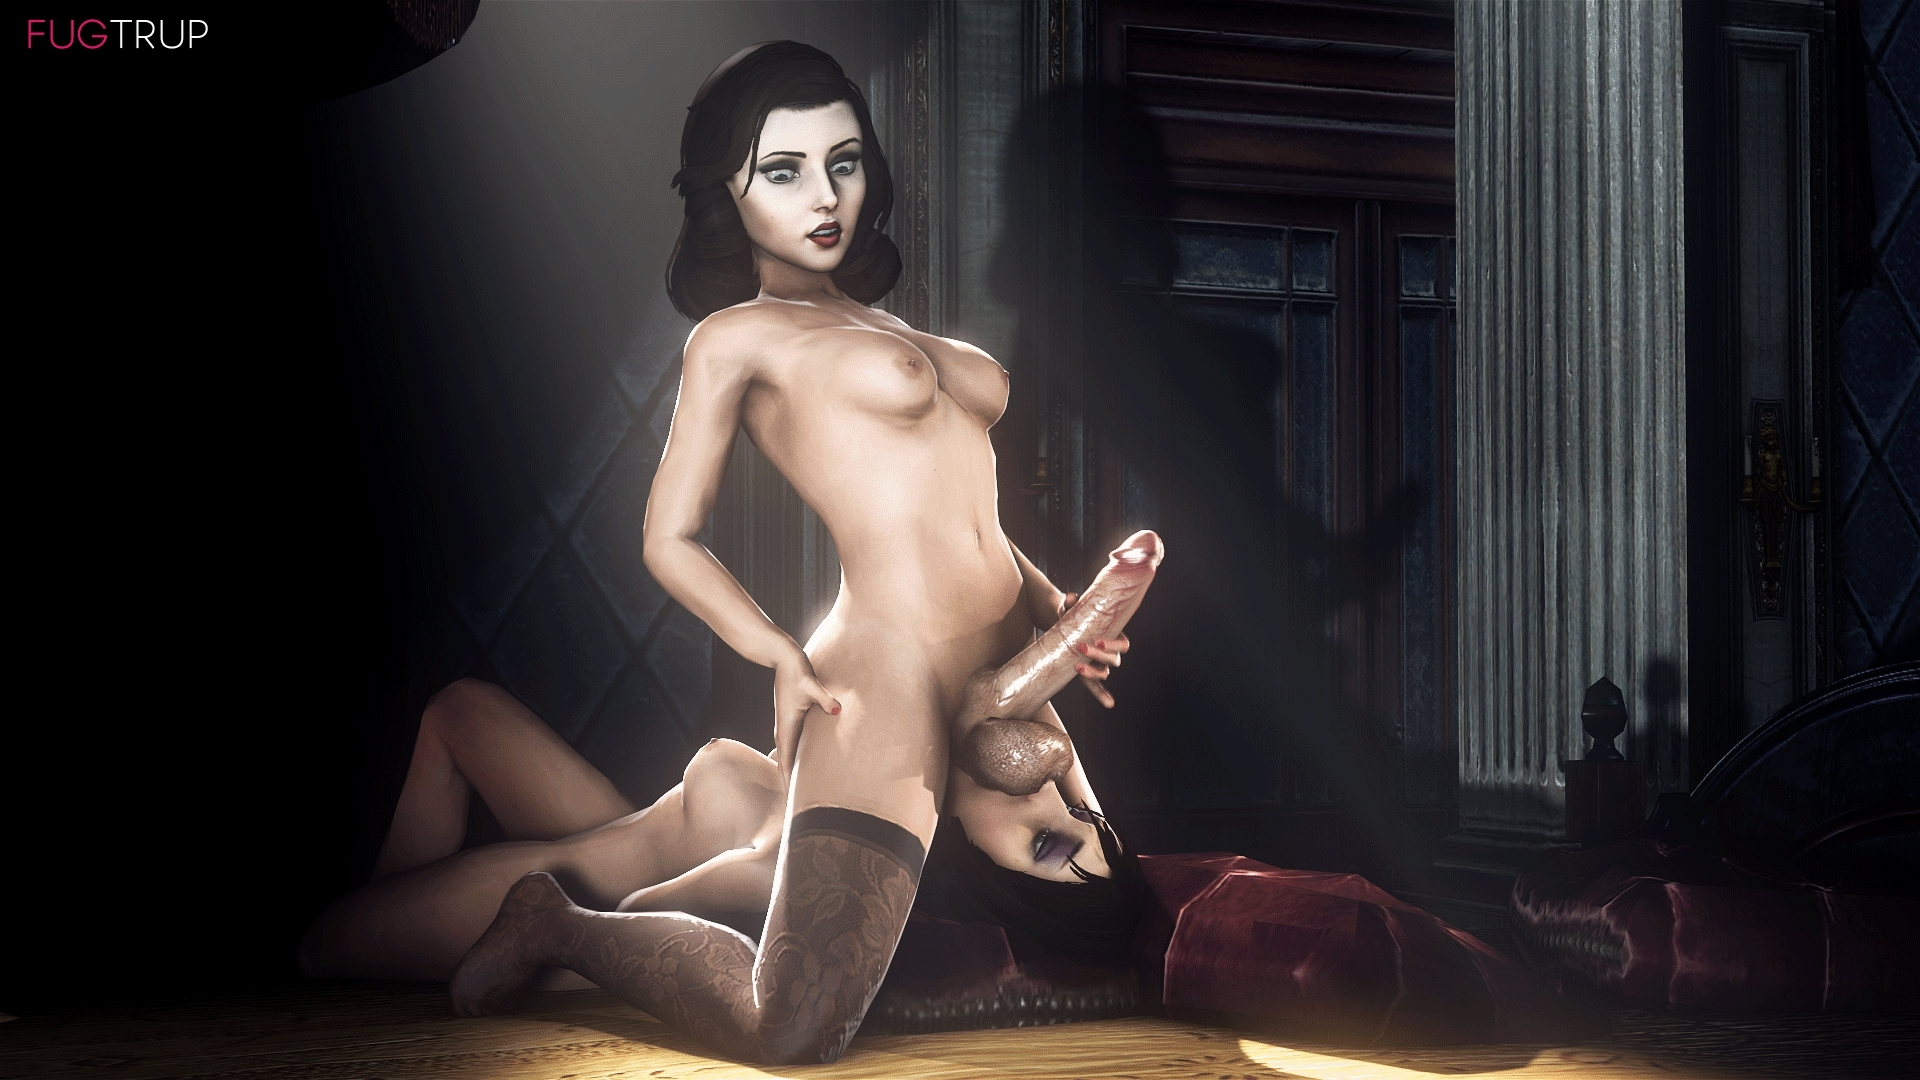 3d sexy nude futanari gif exploited photo